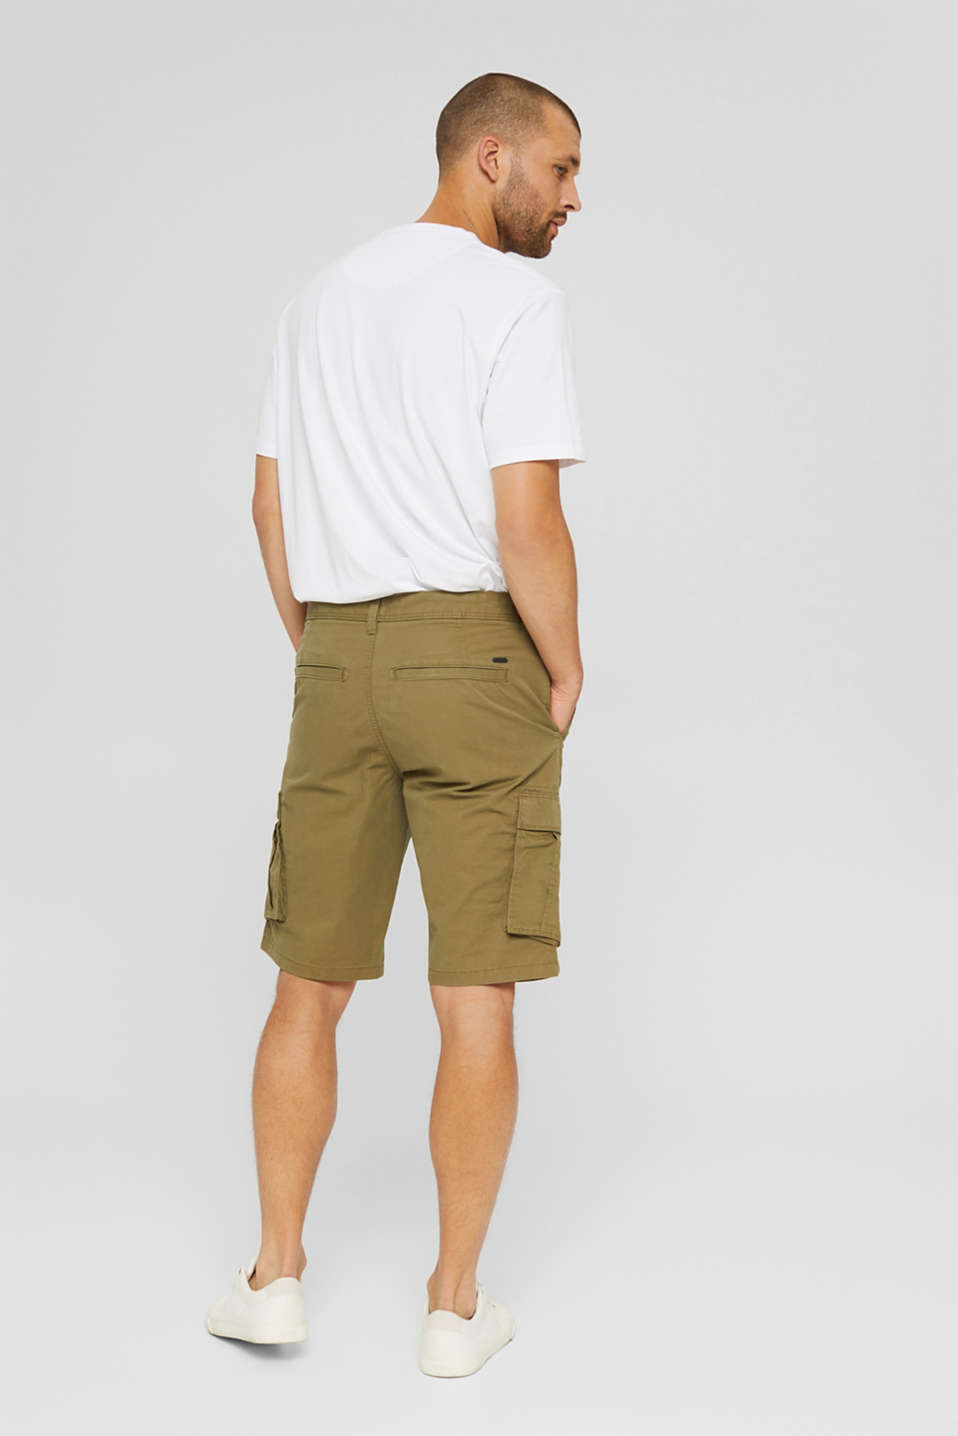 Shorts woven Relaxed fit, OLIVE, detail image number 3